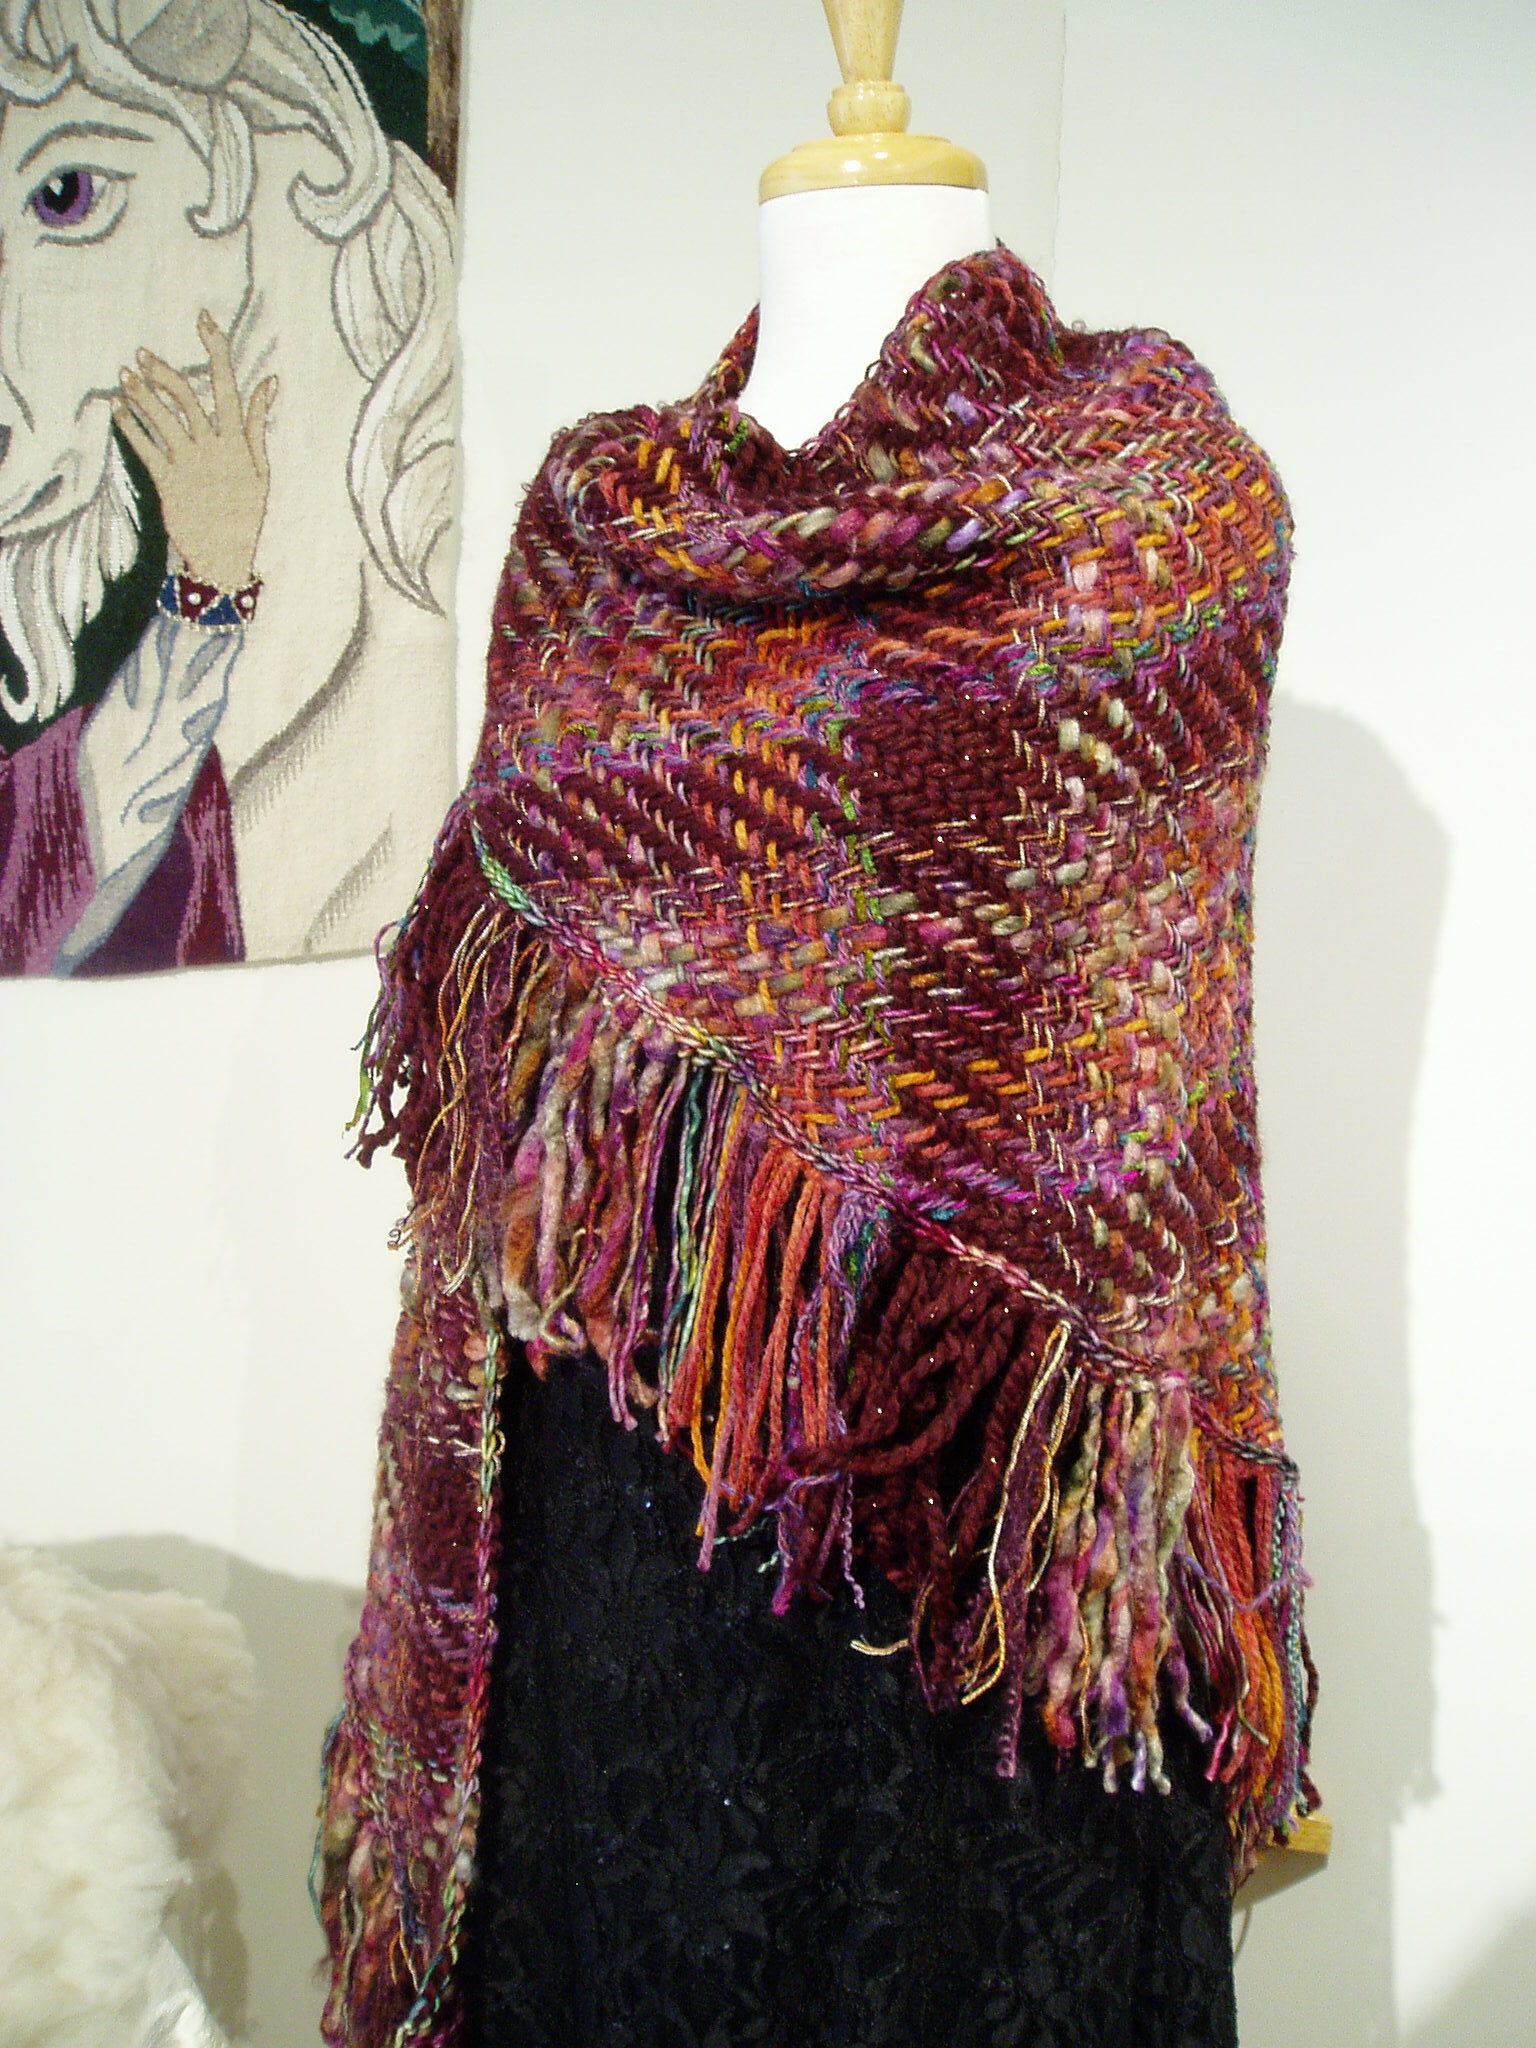 The Making of a Woven Shawl   Erindale Tapestry Studio